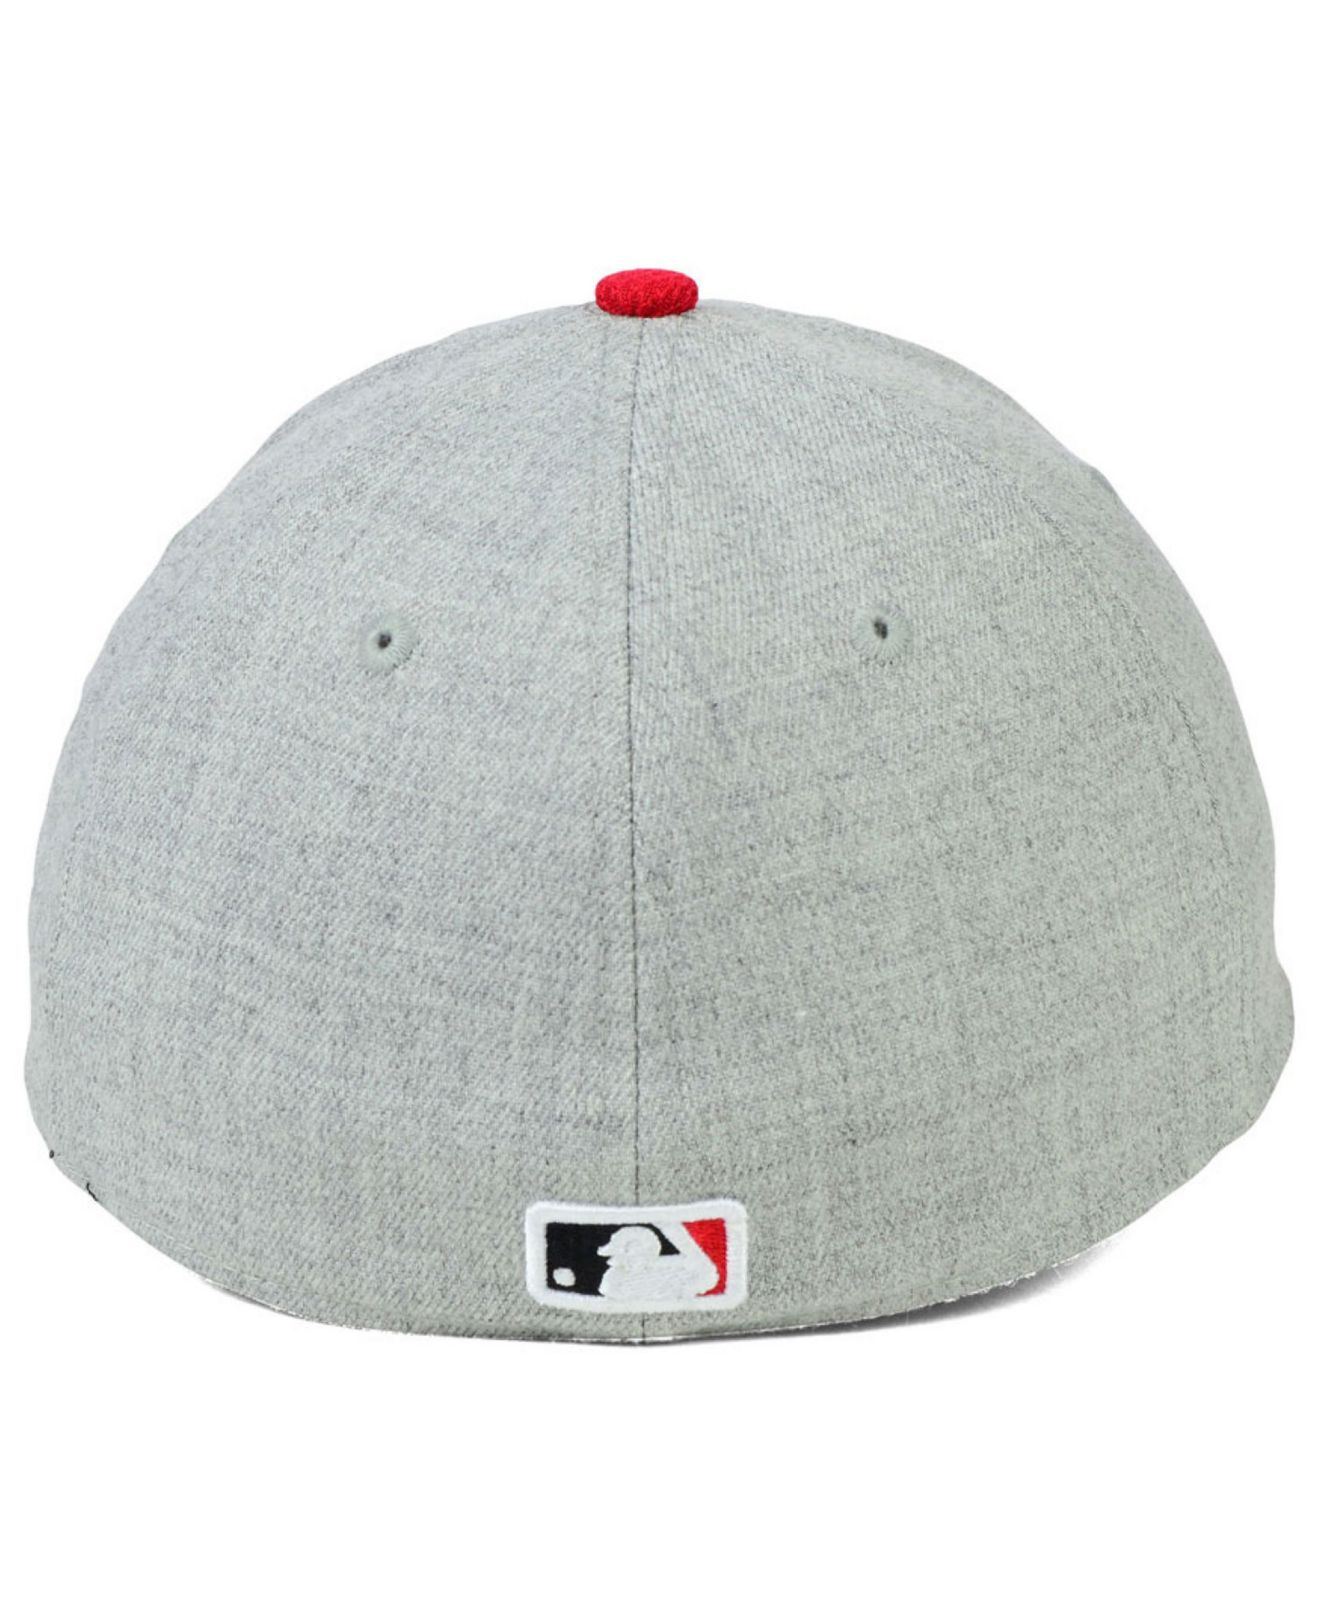 6397e0ebc0f ... new era black the league 9forty adjustable hat c4700 5b2d5  germany  lyst ktz cincinnati reds clubhouse 39thirty cap in gray for men 6402a 8a67b